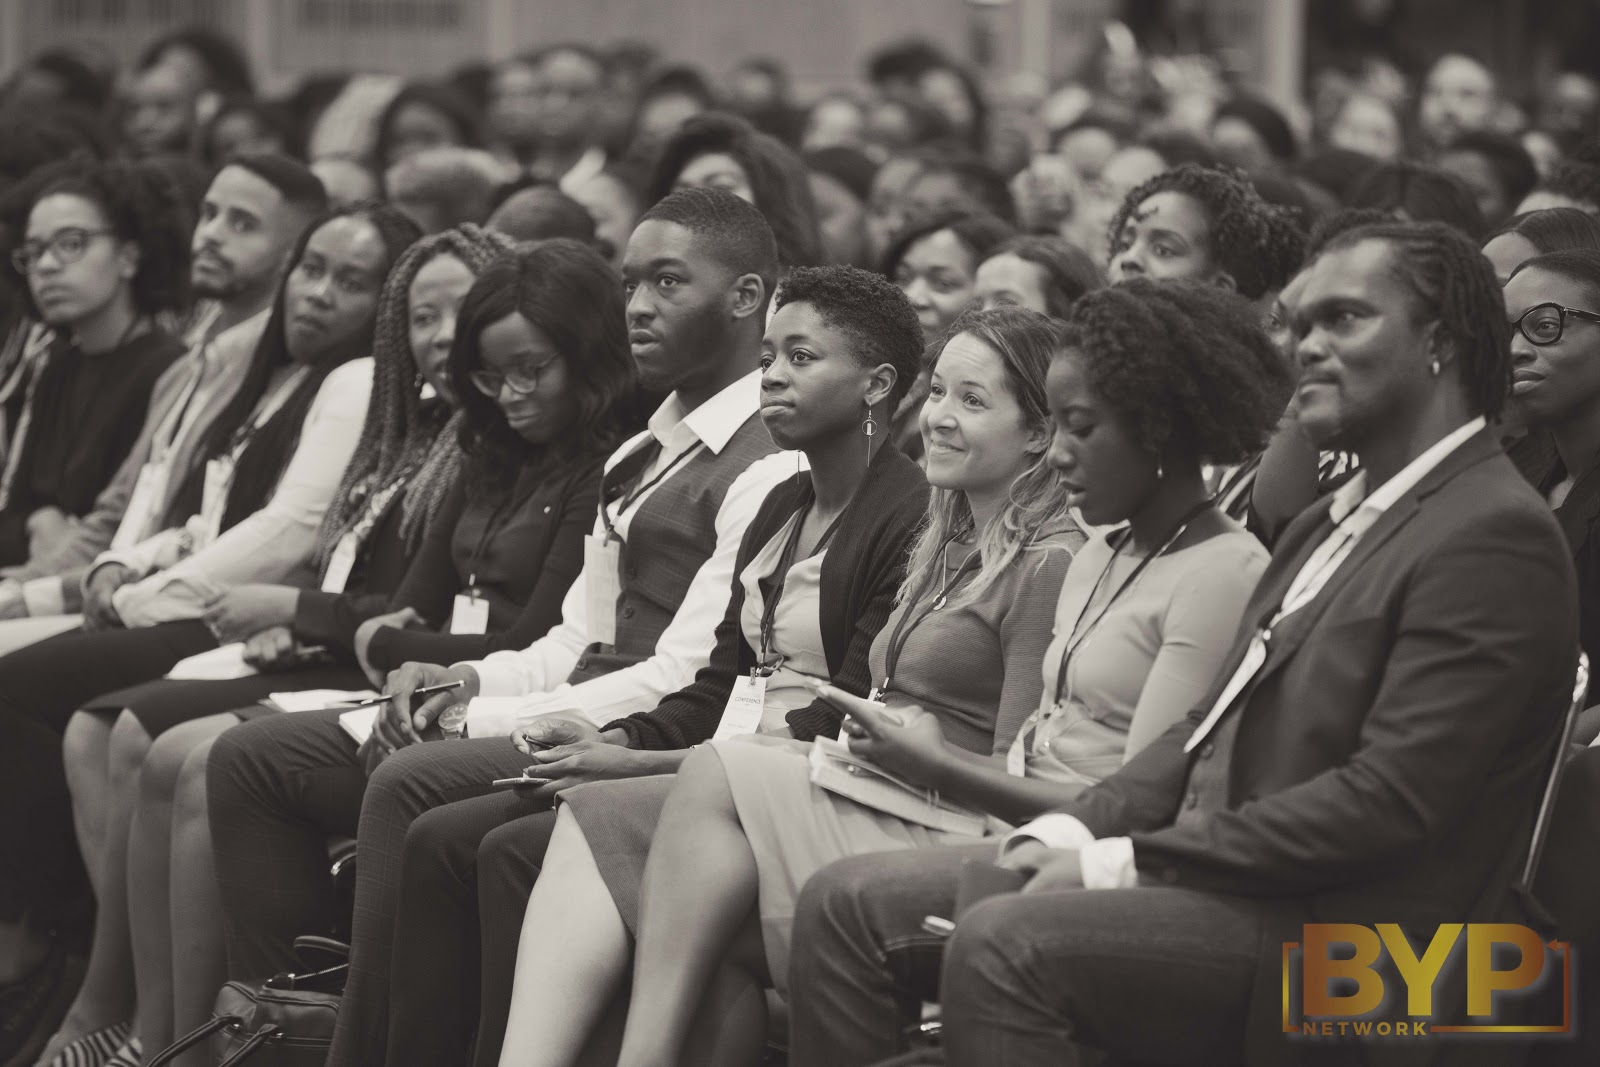 A shot of the crowd at a Black Young Professionals networking event.